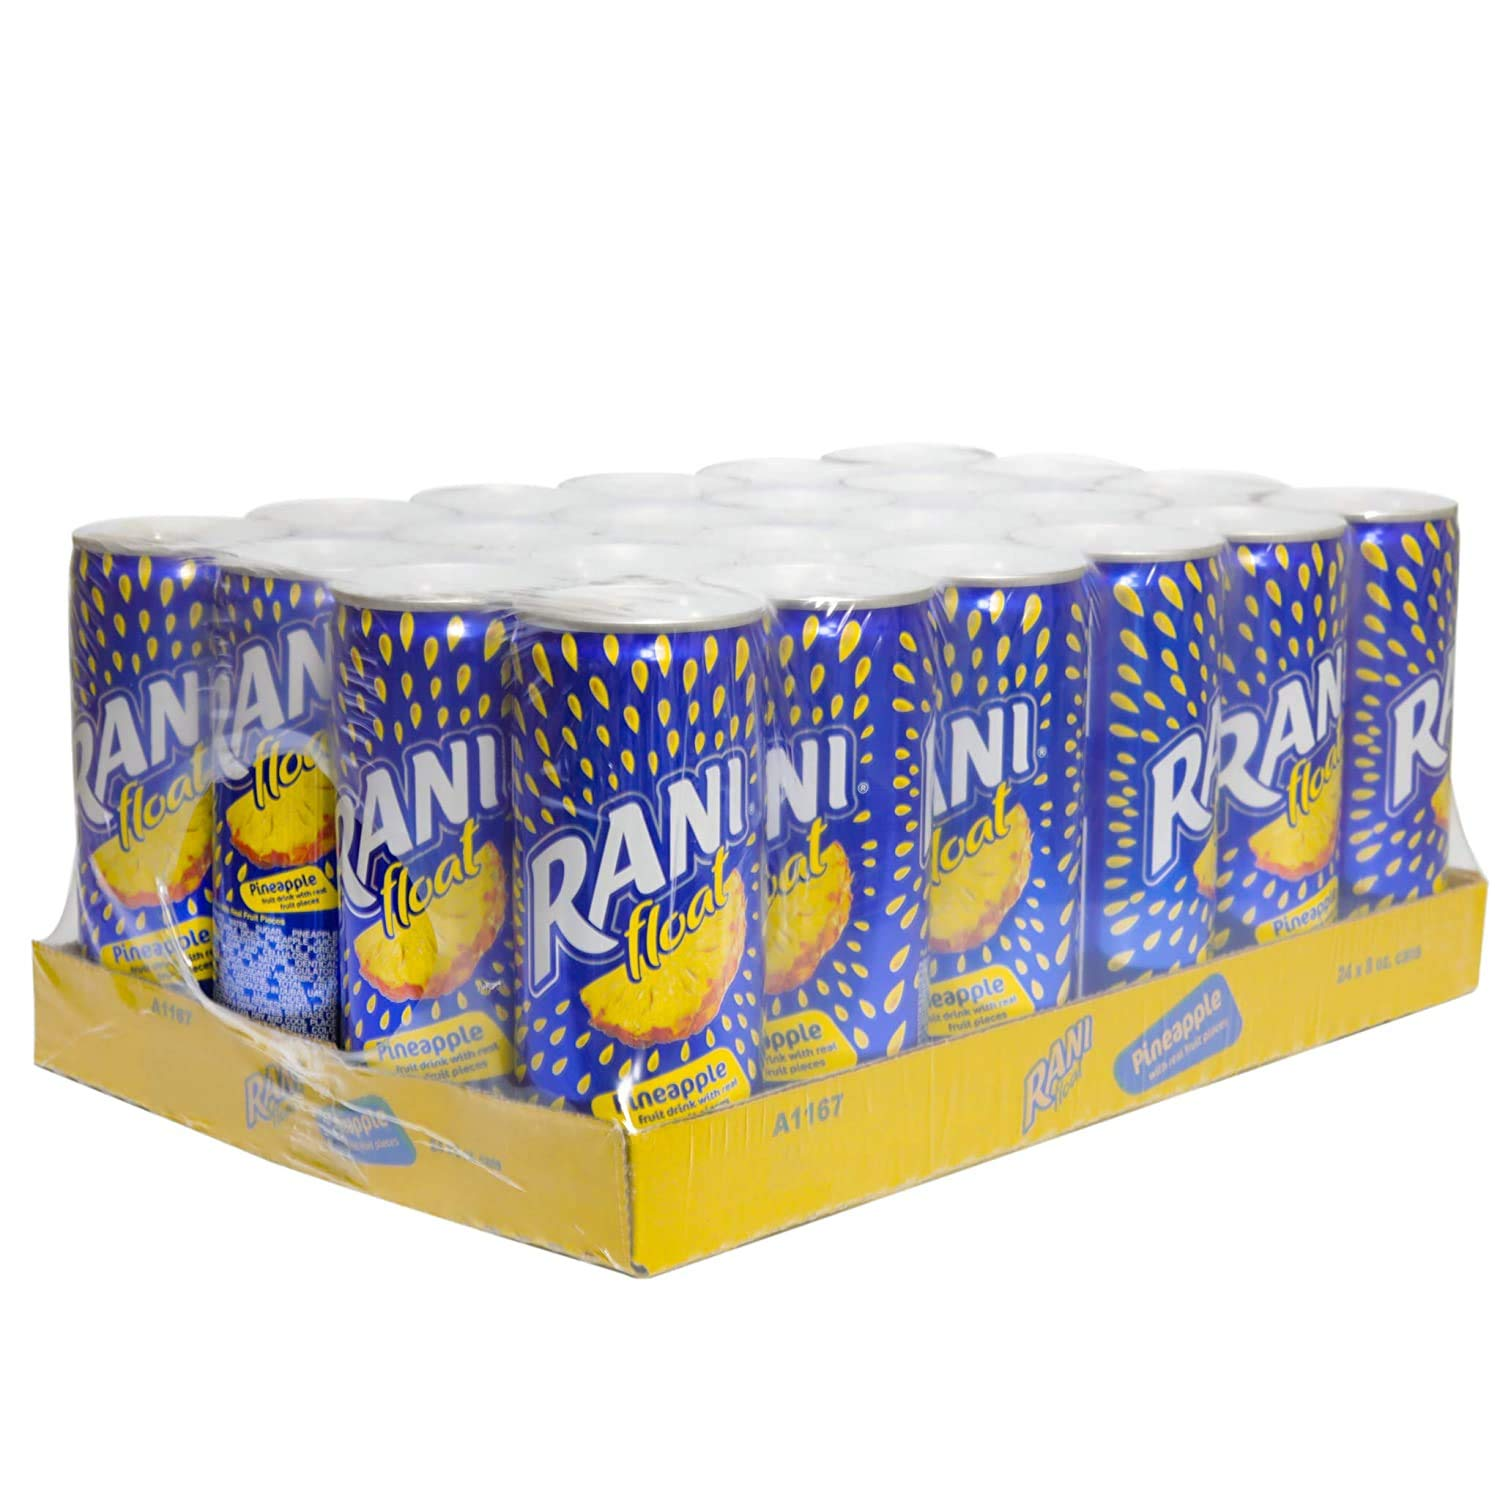 Float Pineapple Juice with Real Fruit of Beverage 24 Pieces Pack Super Max 44% OFF popular specialty store